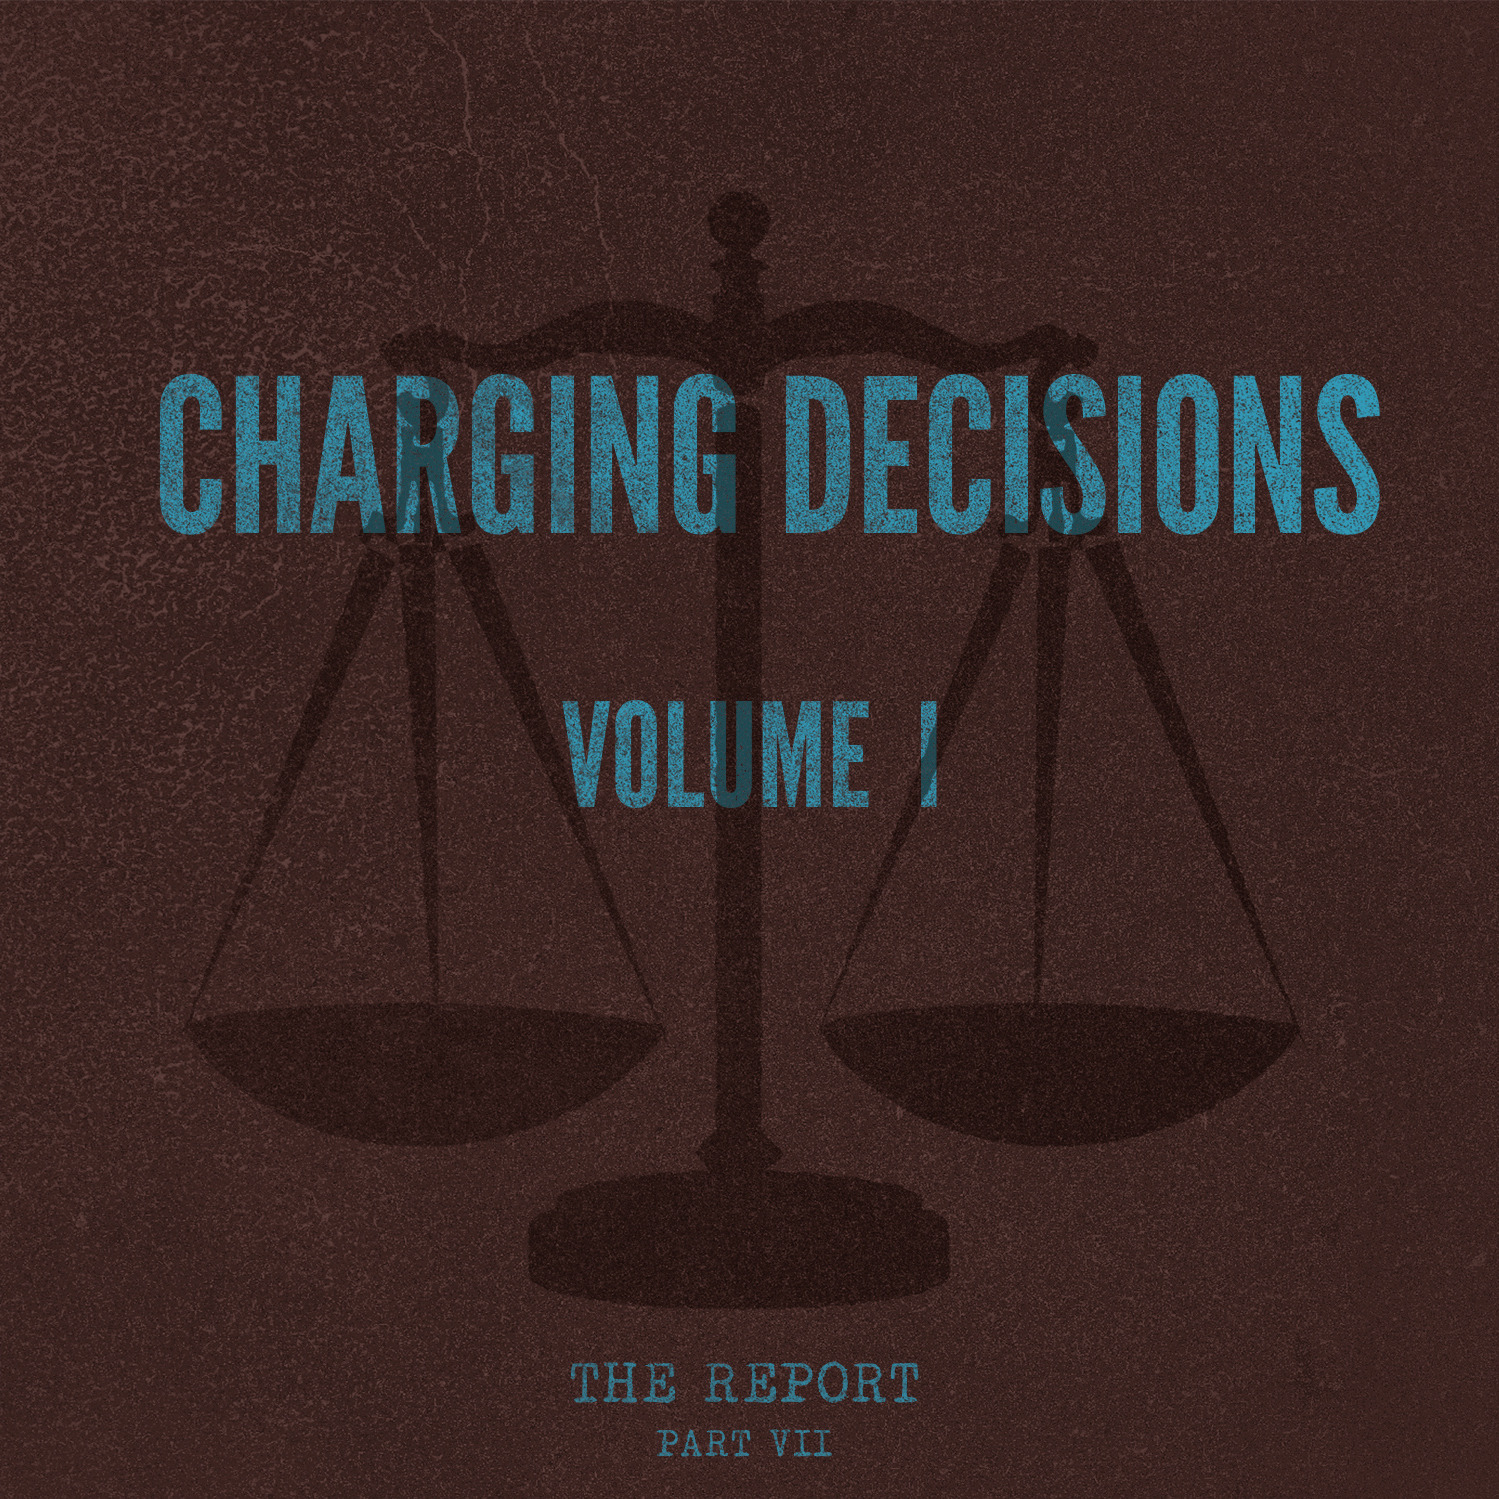 Part VII: Charging Decisions